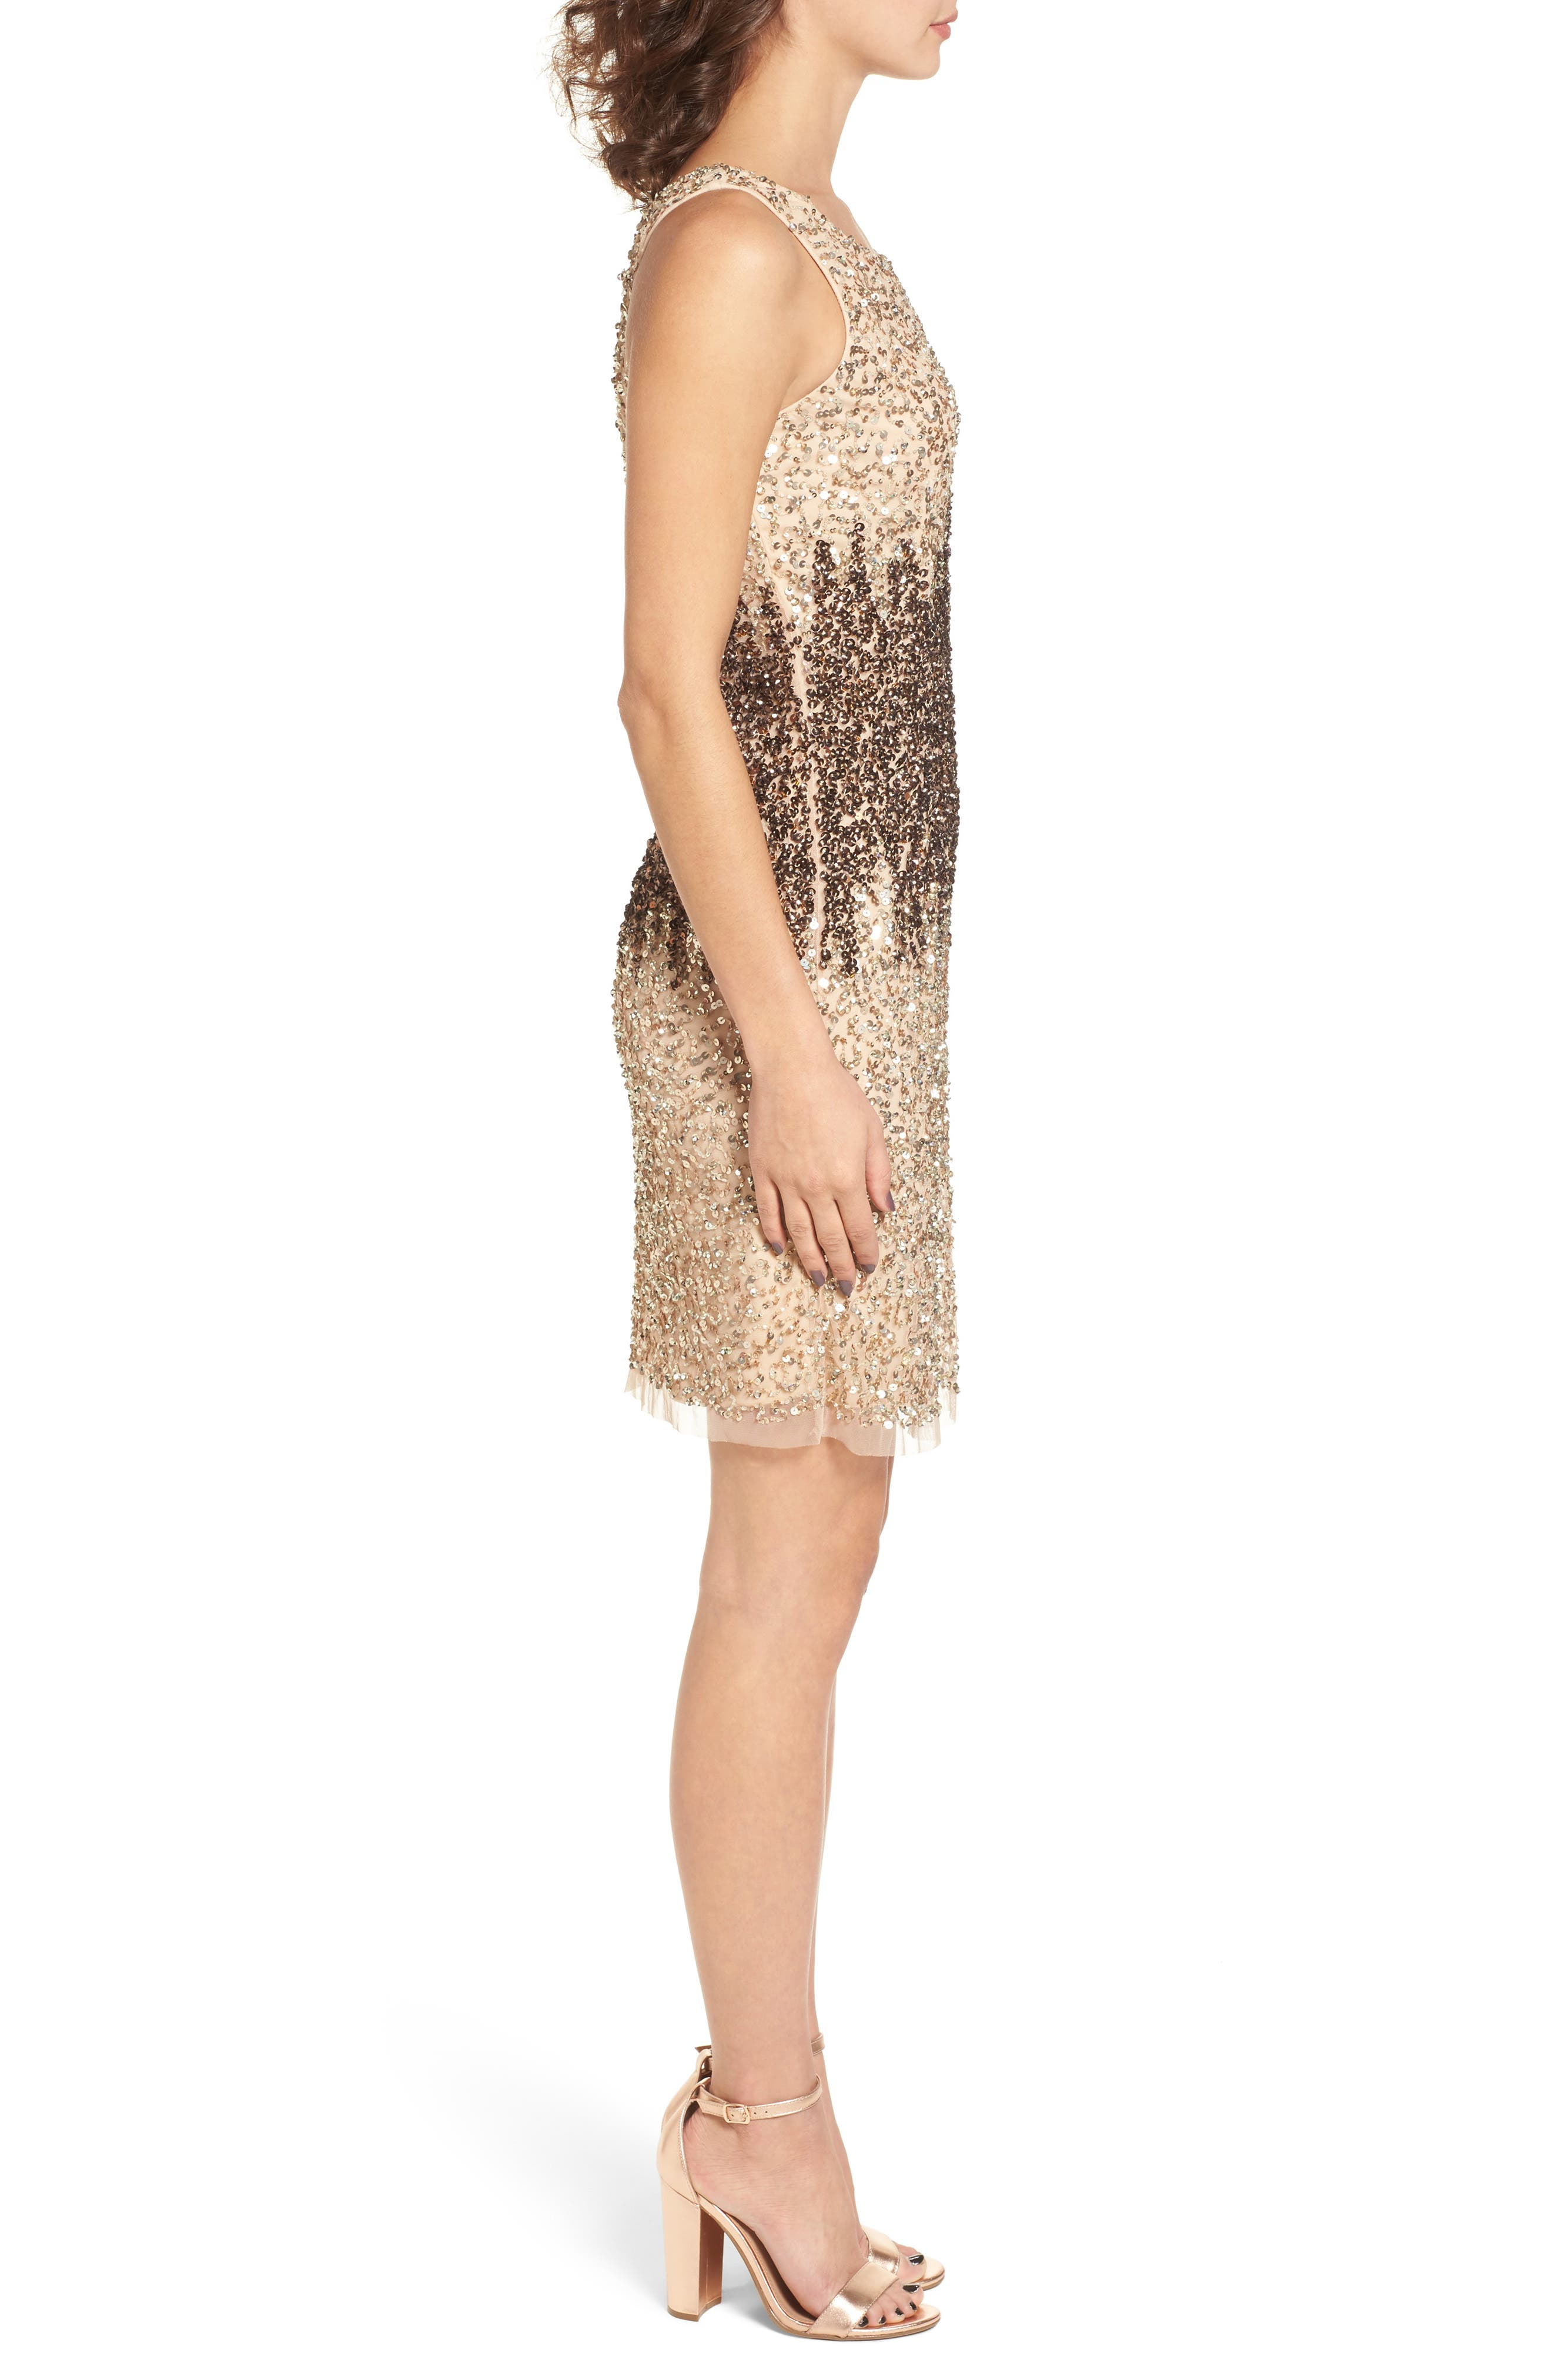 Sequins and Champagne Dress,                             Alternate thumbnail 3, color,                             280